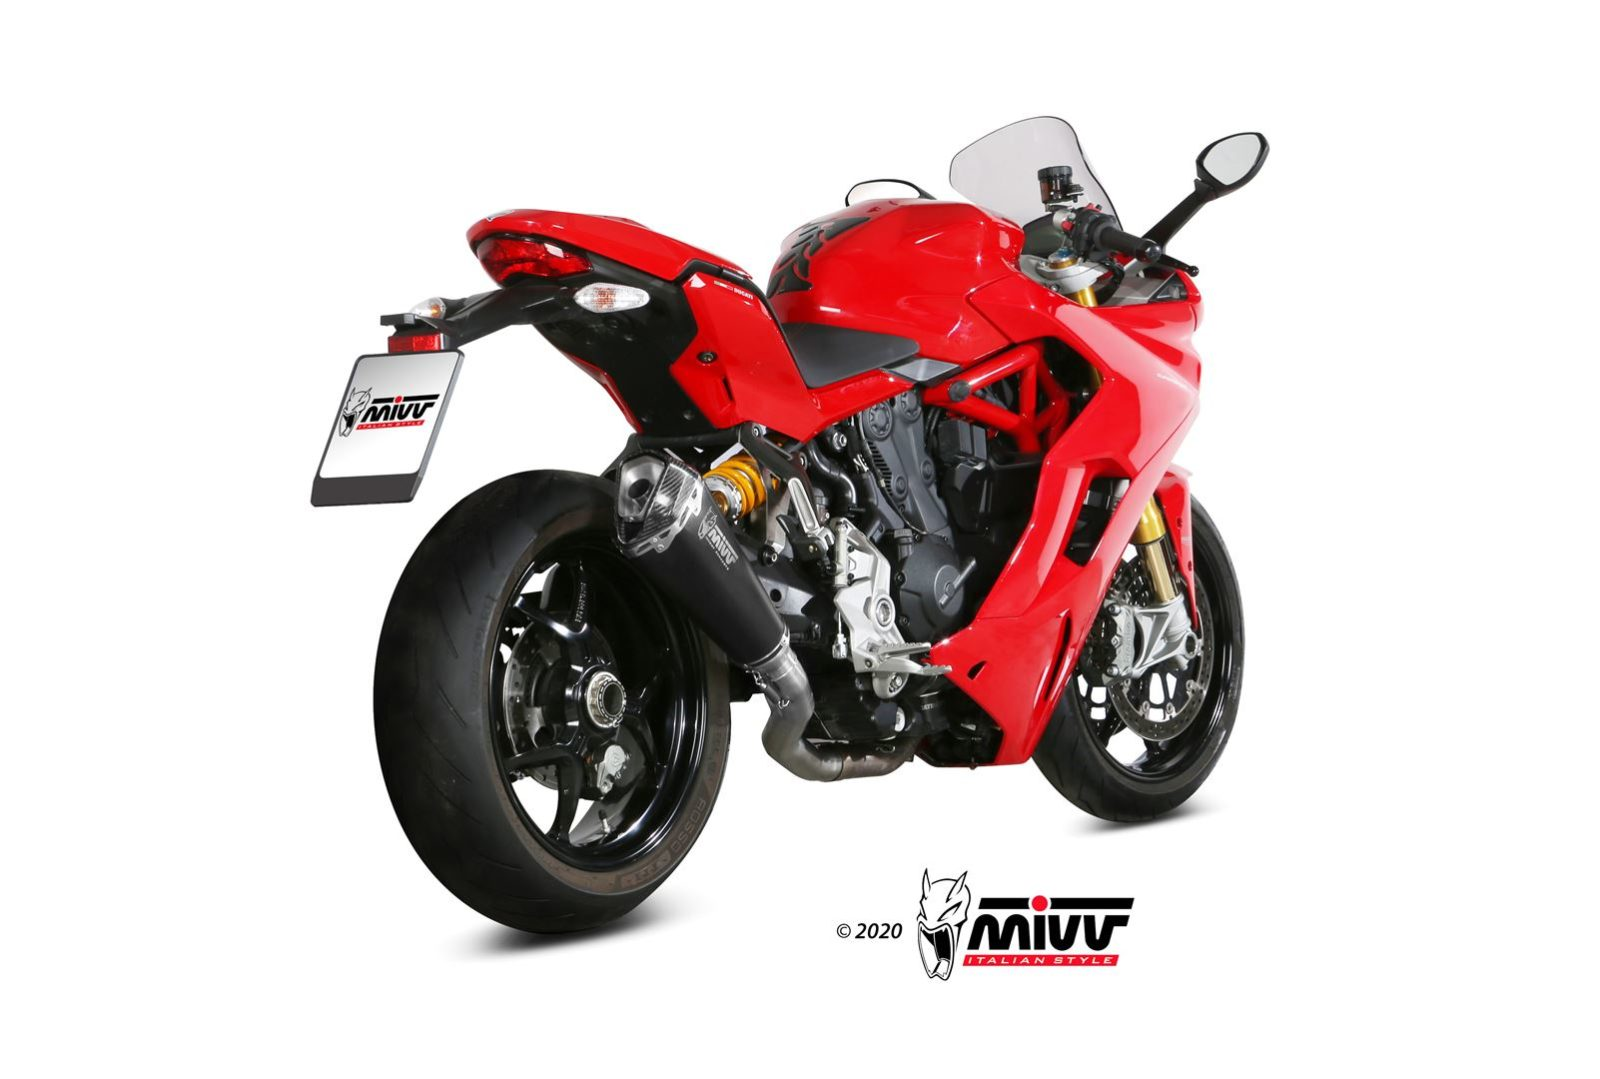 Ducati_Supersport939_17-_73D044LDRB_$02